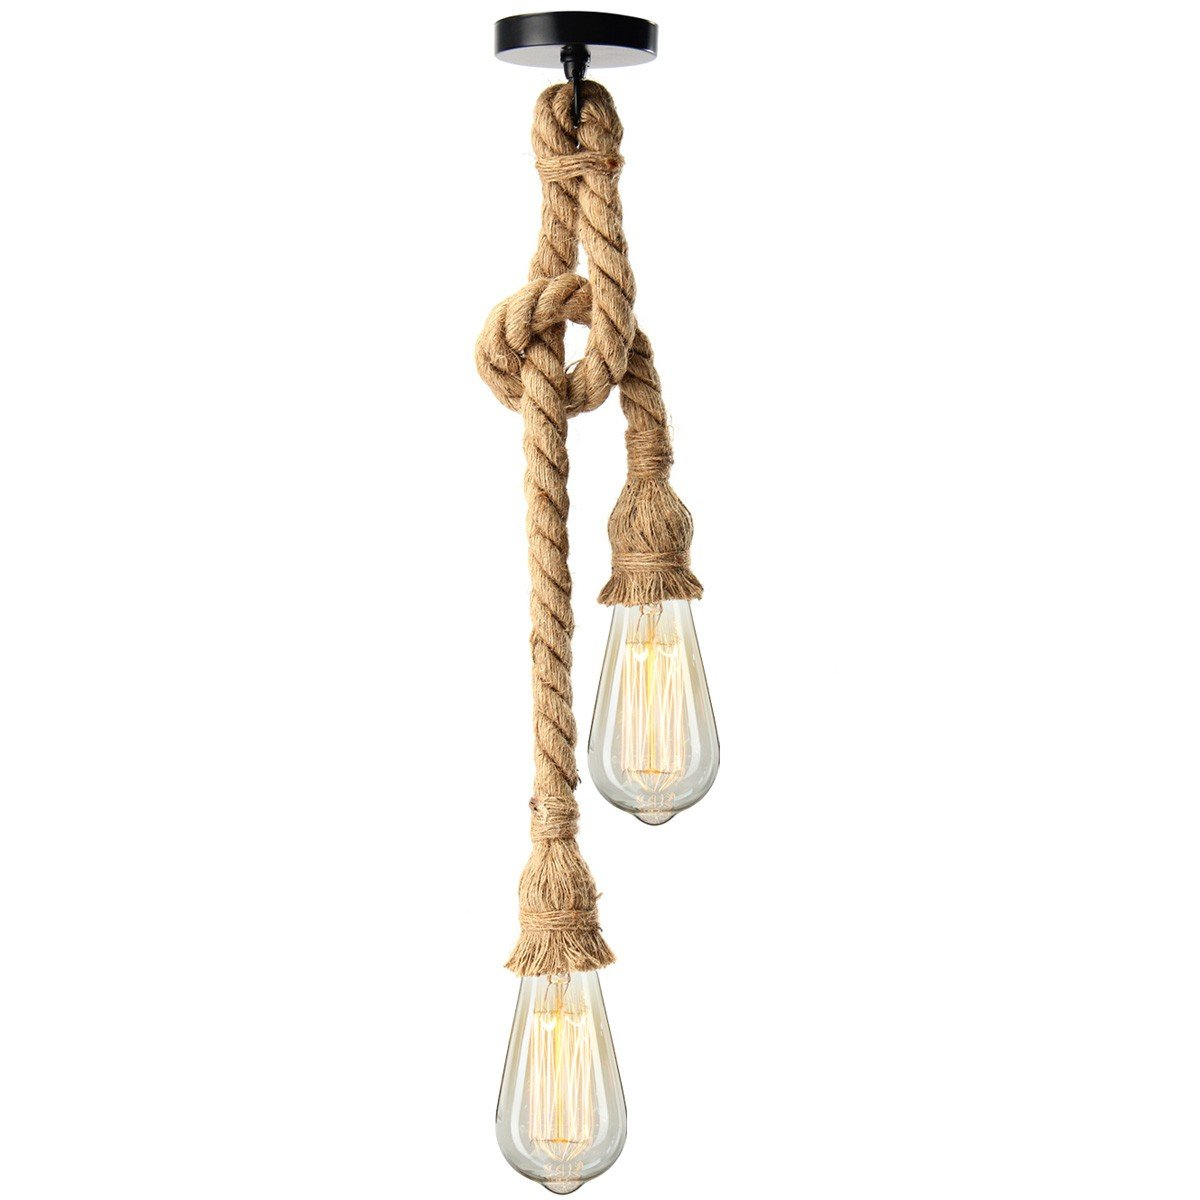 Kingso E27 Lamp Socket Vintage Edison Rope Hemp Ceiling Light Voltage Ac Pendant Holder Without Wire Chandelier No Bulb With 2 Holders